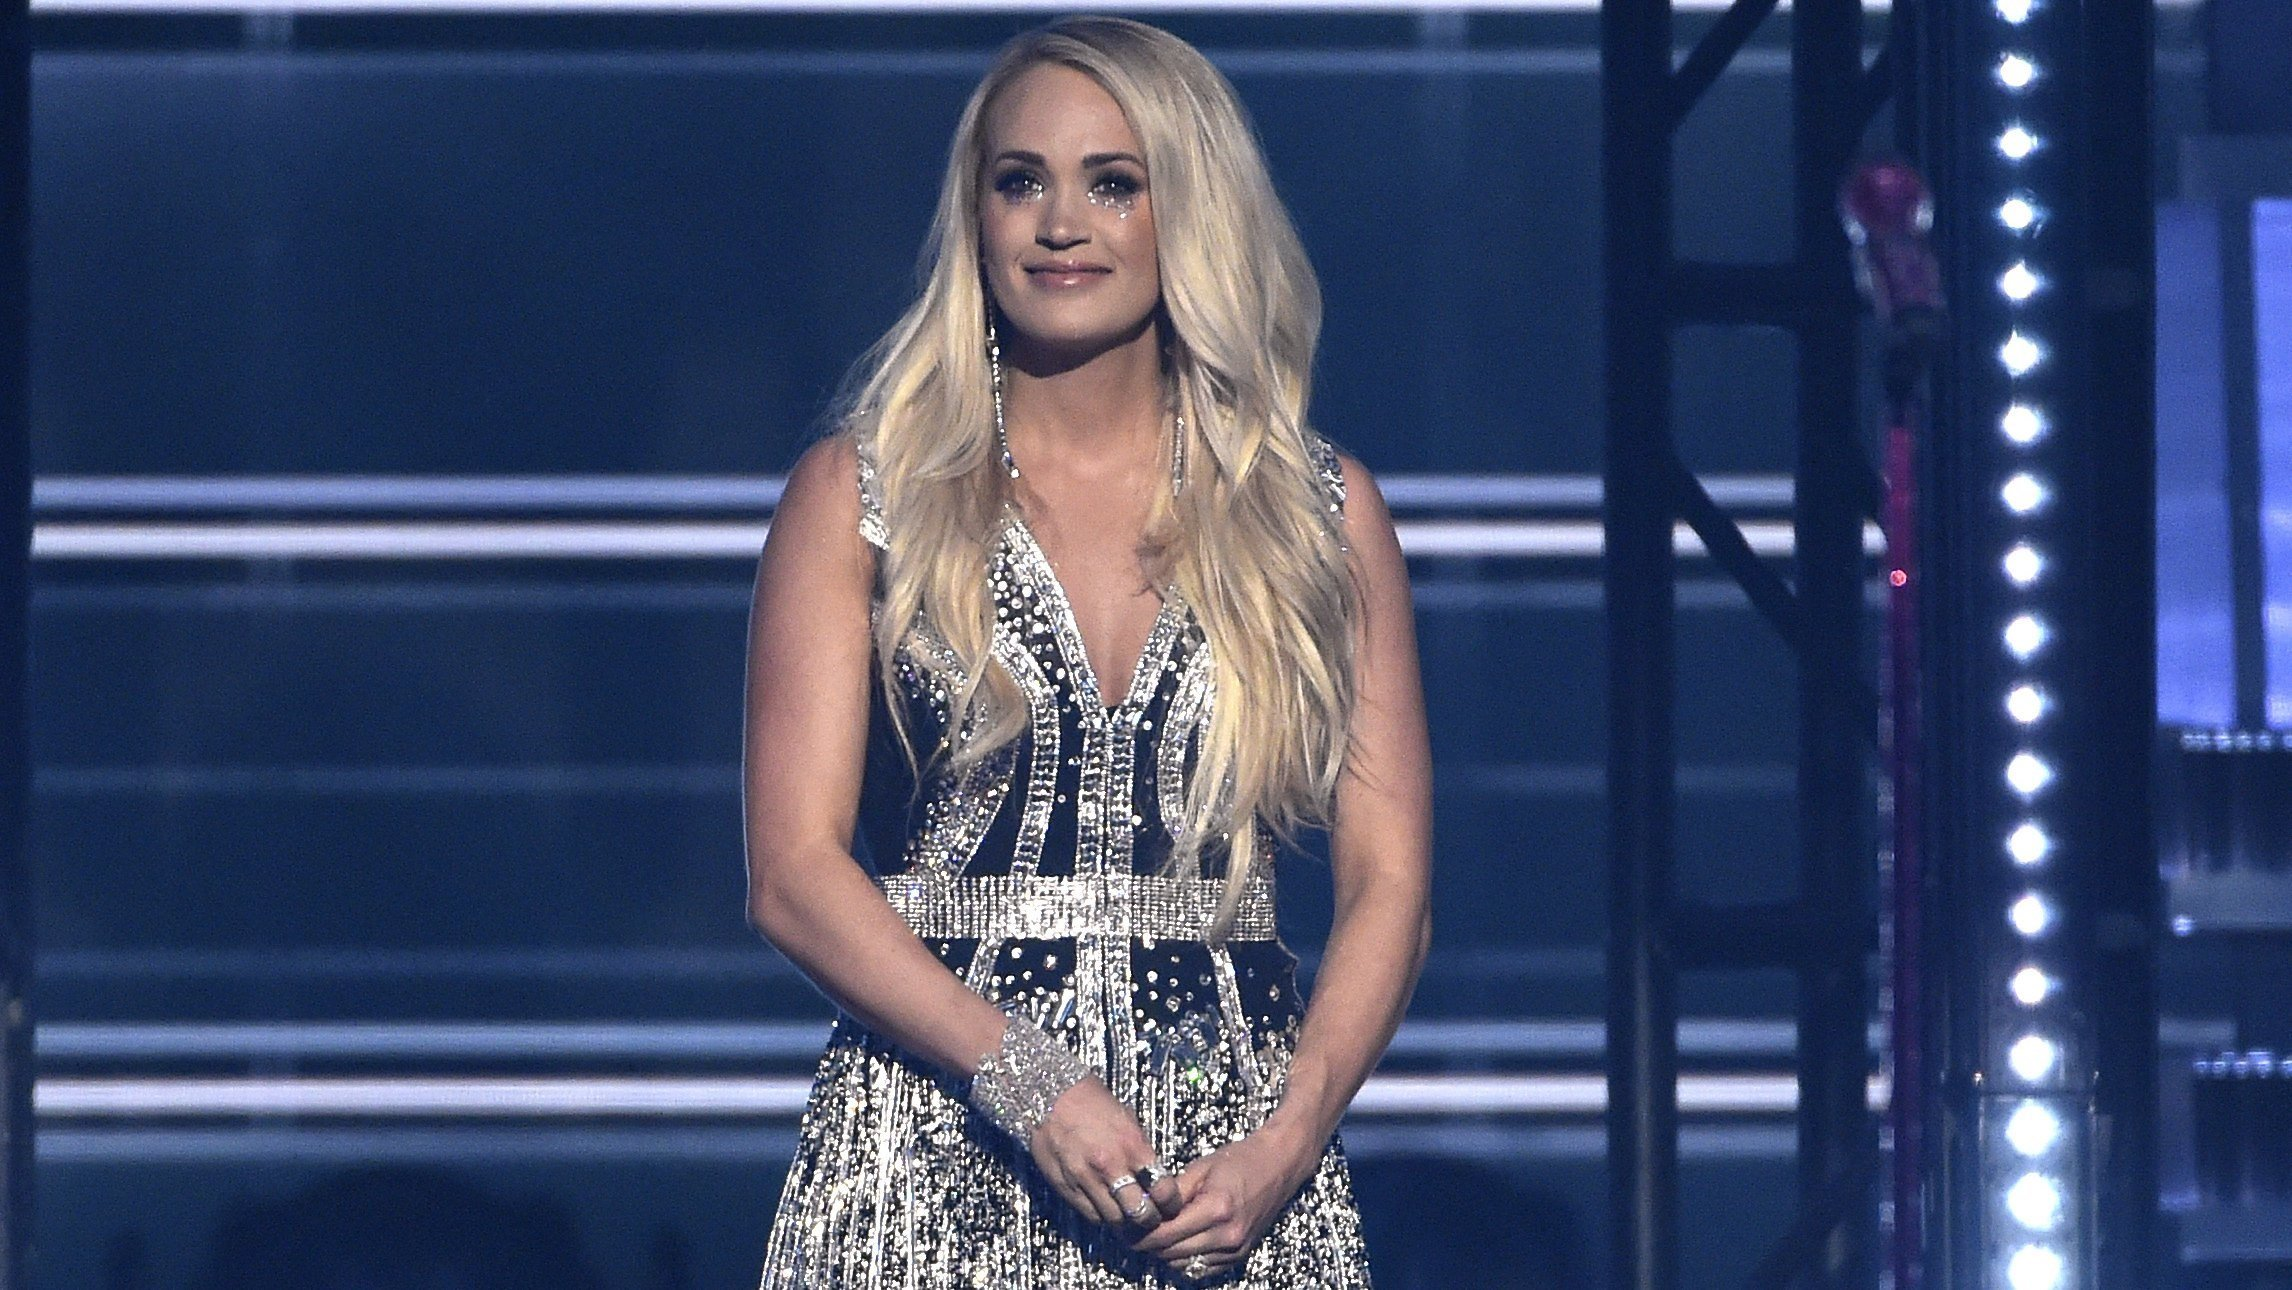 Carrie Underwood receives standing ovation after performing'Cry Pretty